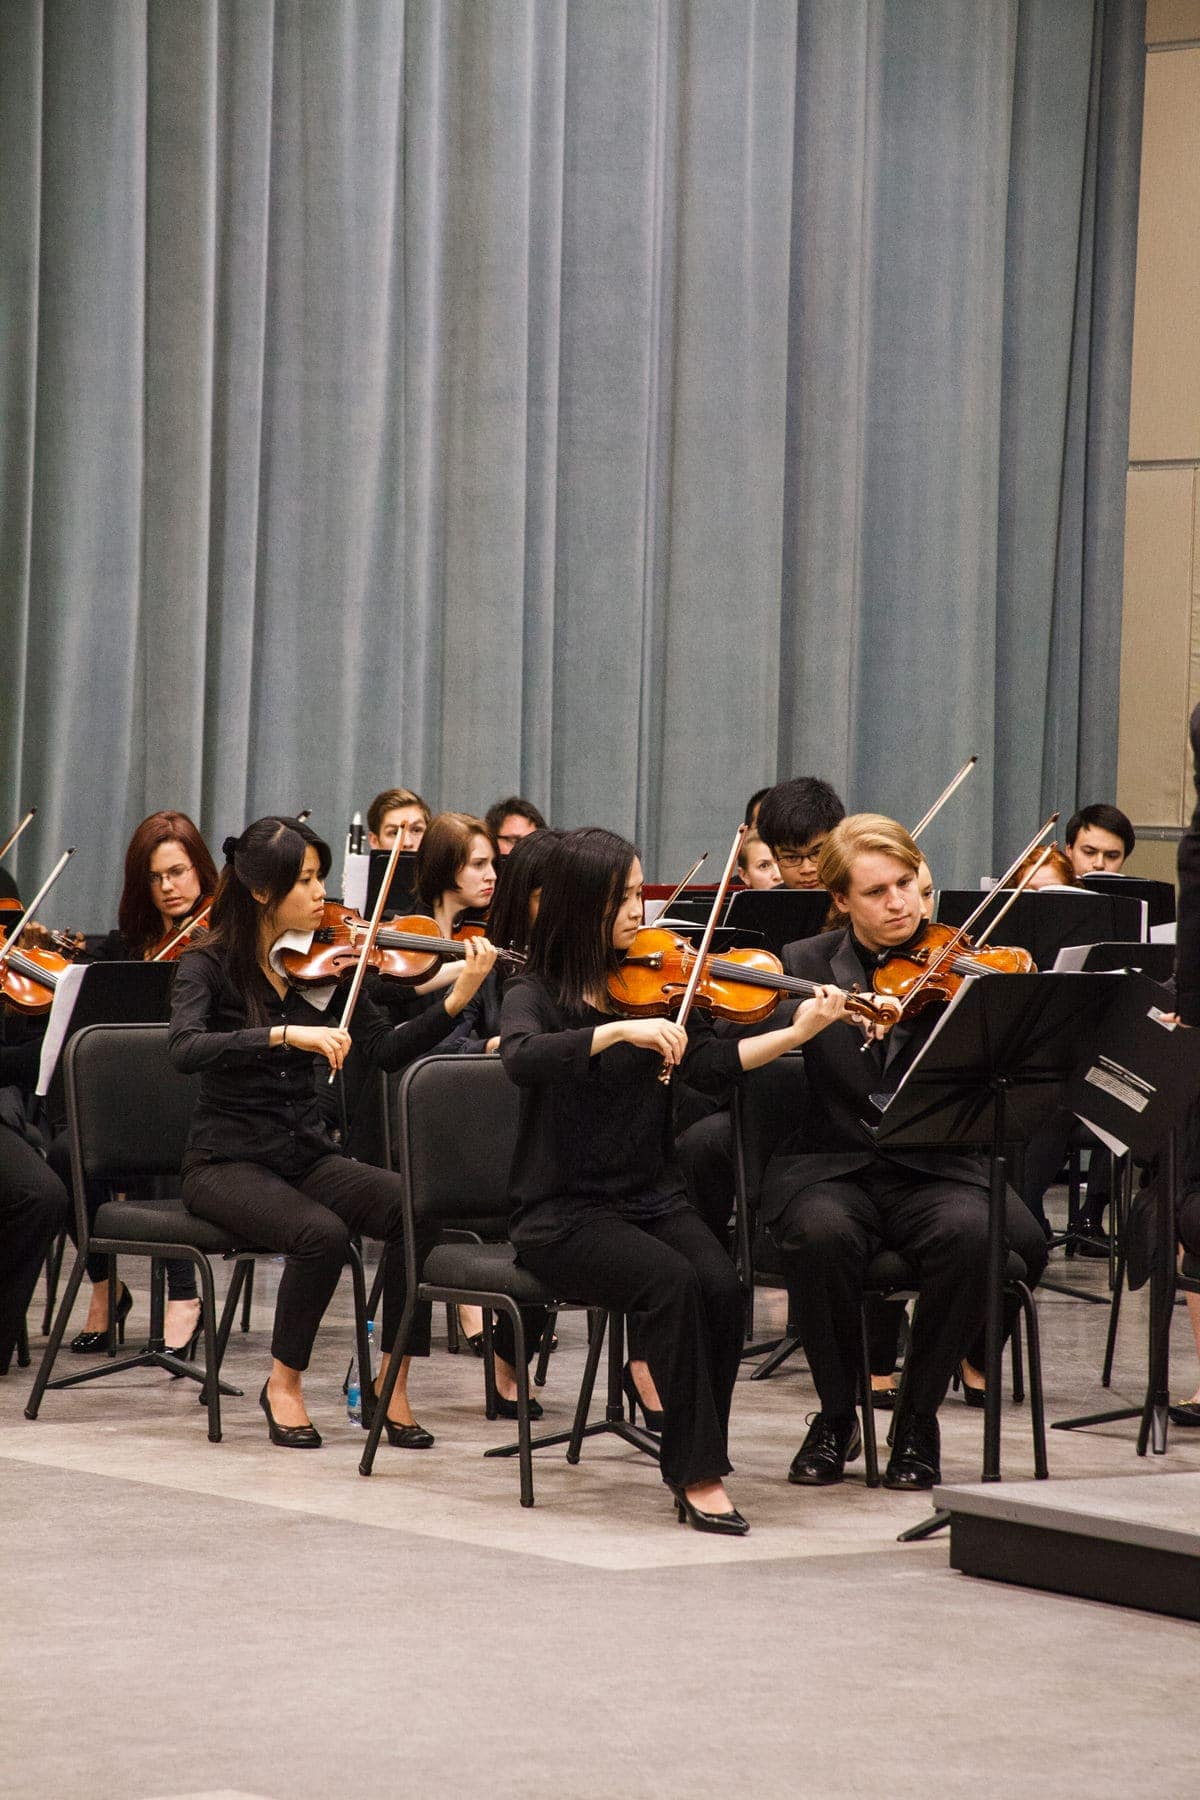 The George Mason University Orchestra. Photo by Michelle Stella Riordan/Photography by Exposure.